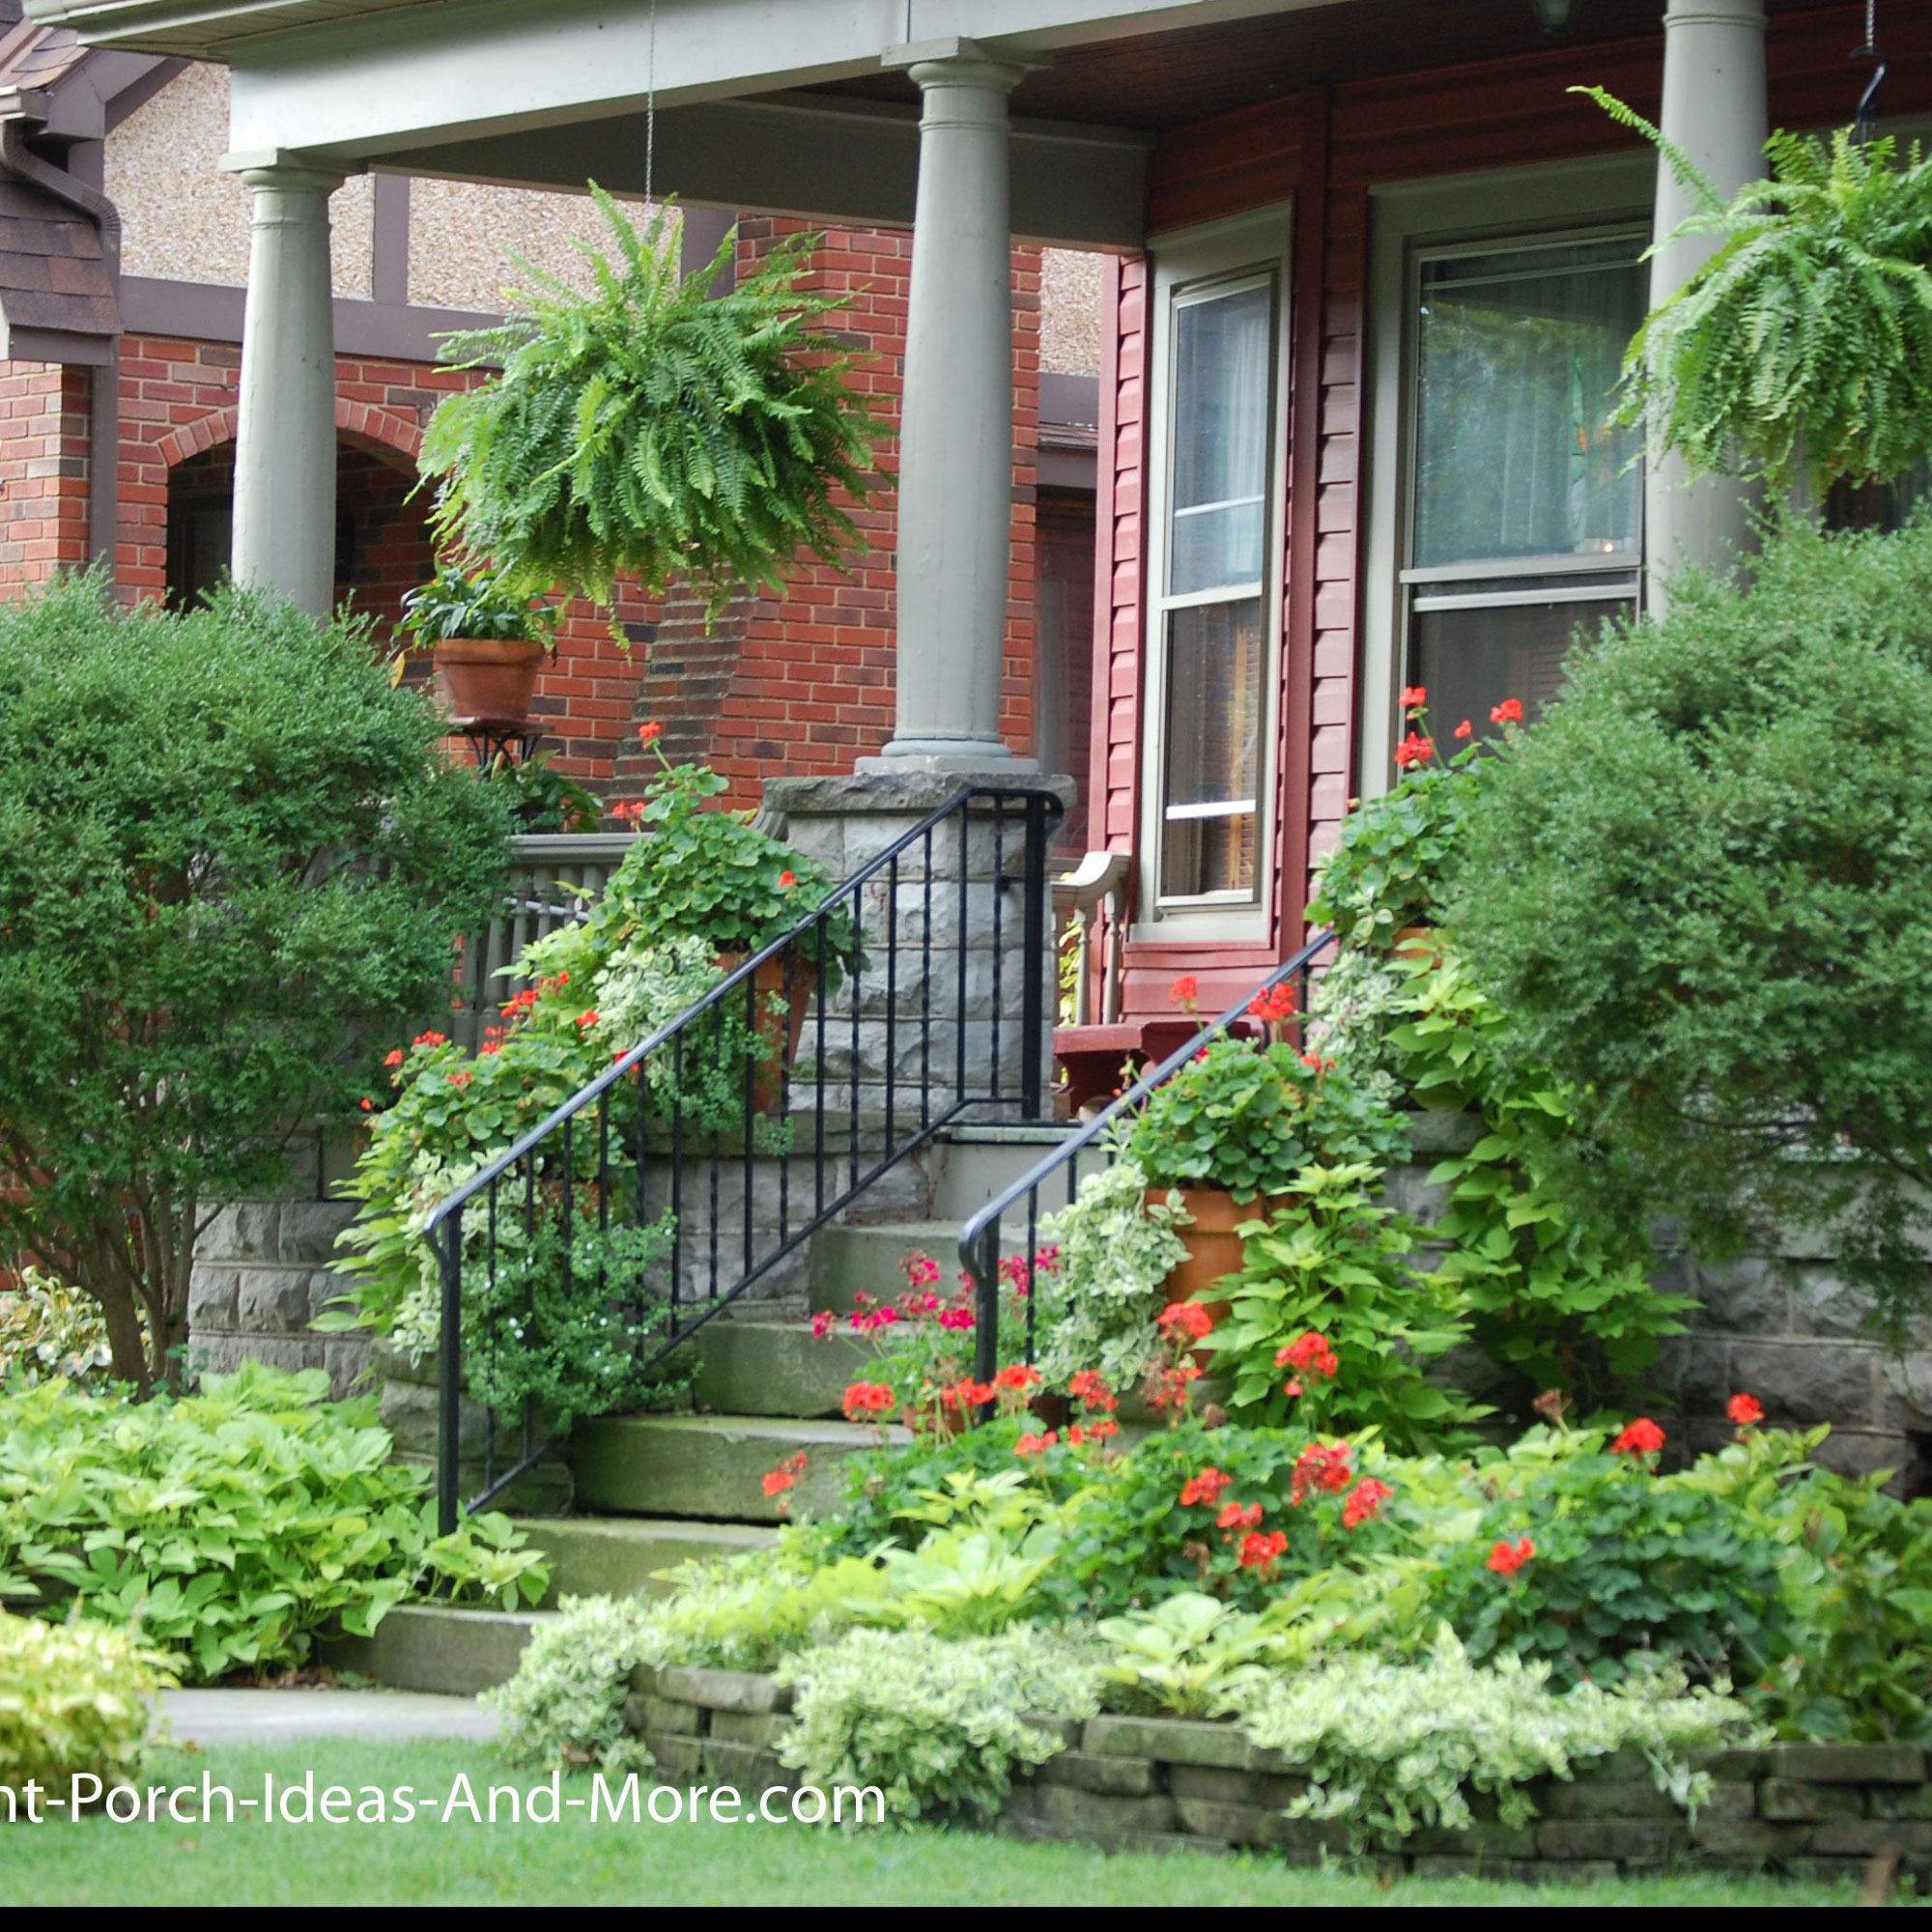 Porch landscaping ideas for your front yard and more House landscaping ideas